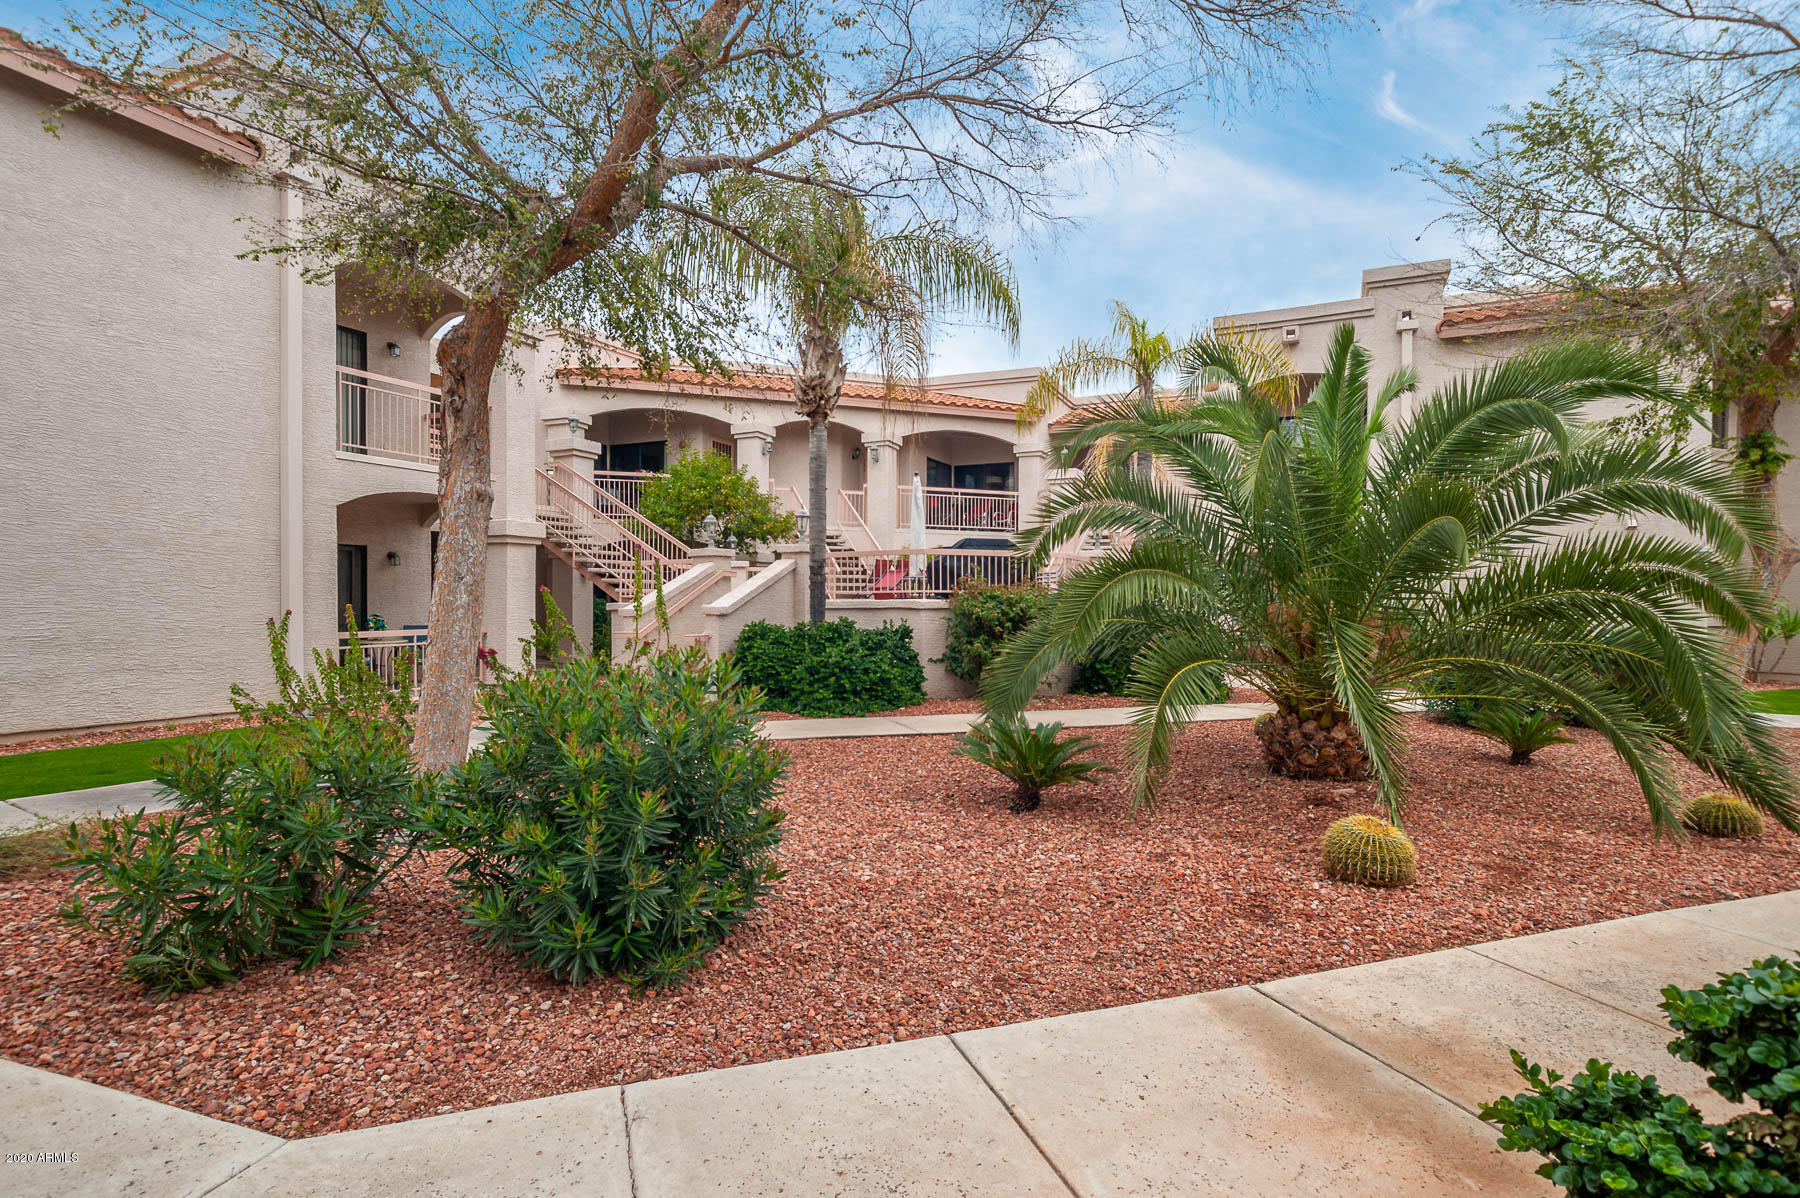 Photo of 9151 W GREENWAY ROAD   UNIT 288 --, Peoria, AZ 85381